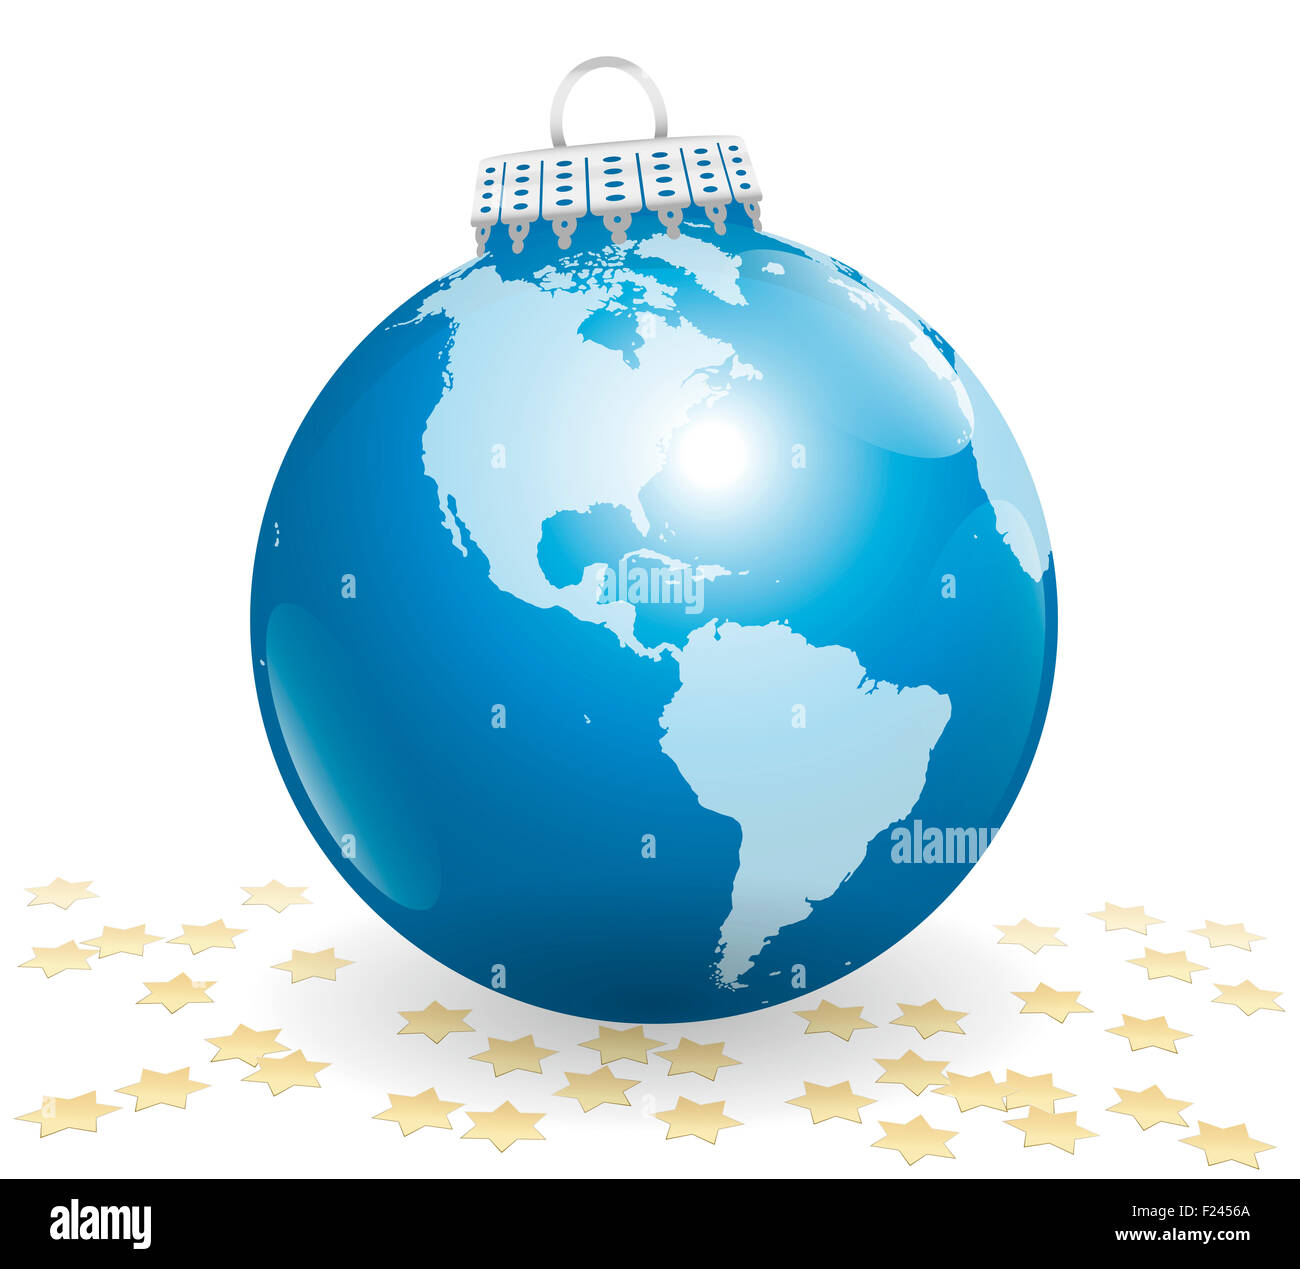 Xmas tree ball - planet earth - american point of view - with many golden glitter stars. Illustration on white background. - Stock Image